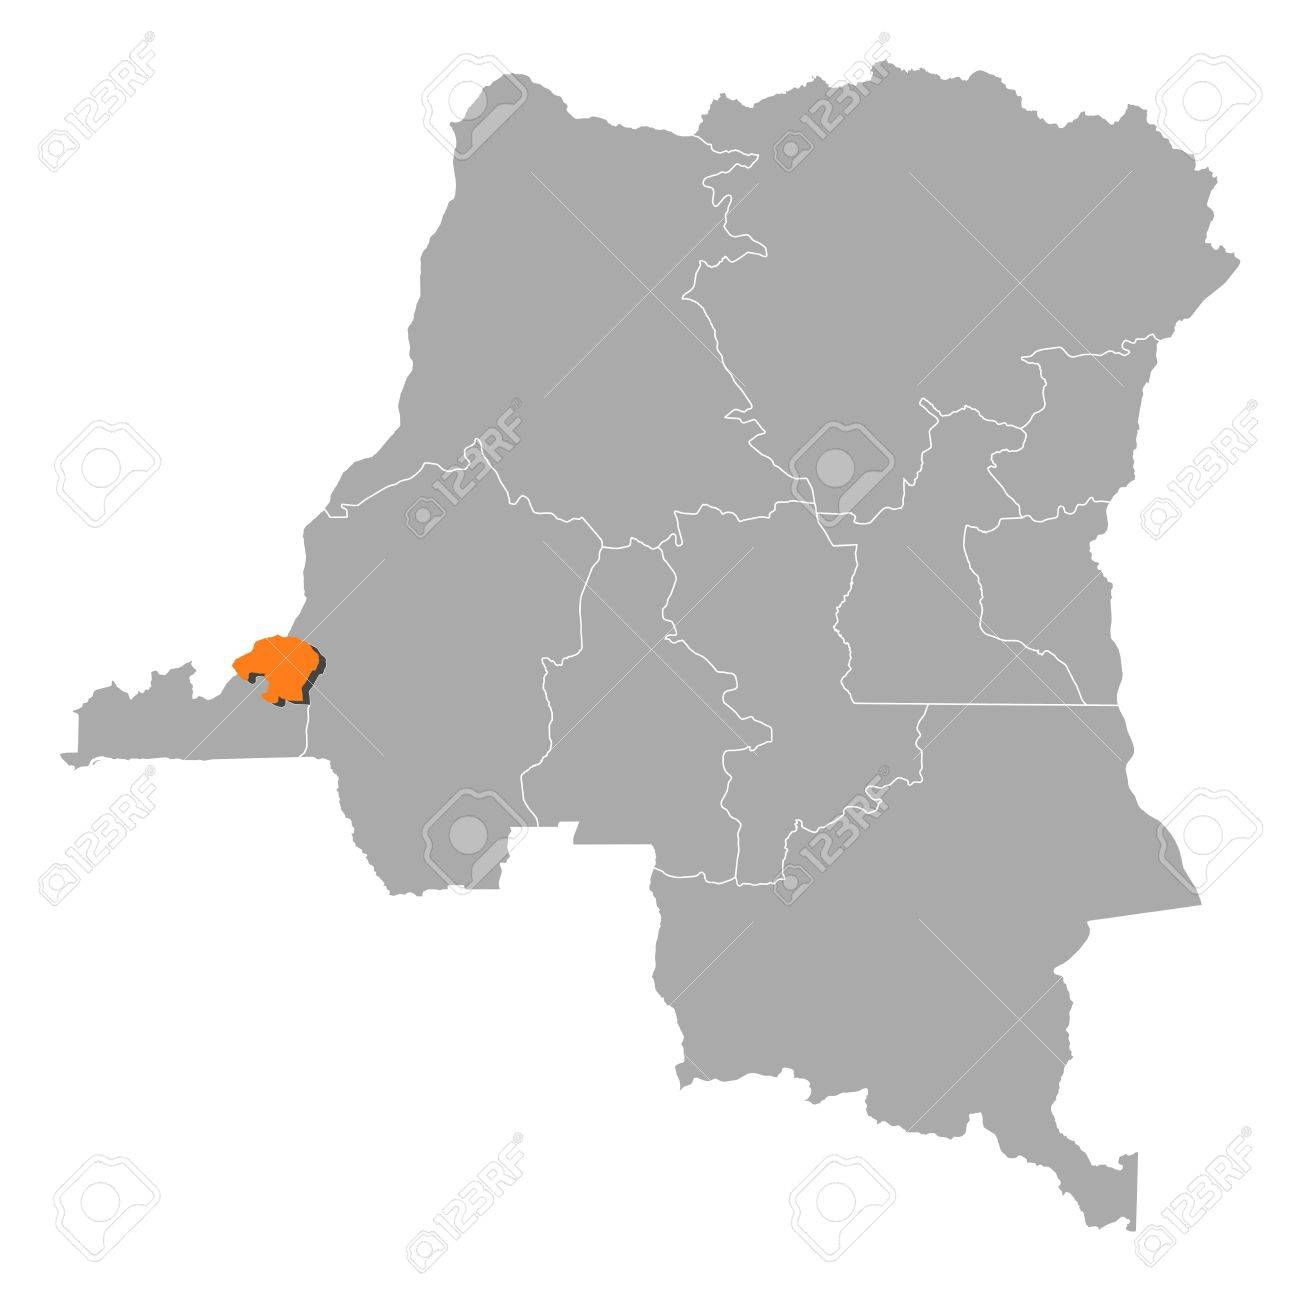 Map Of Democratic Republic Of The Congo Where Kinshasa Is